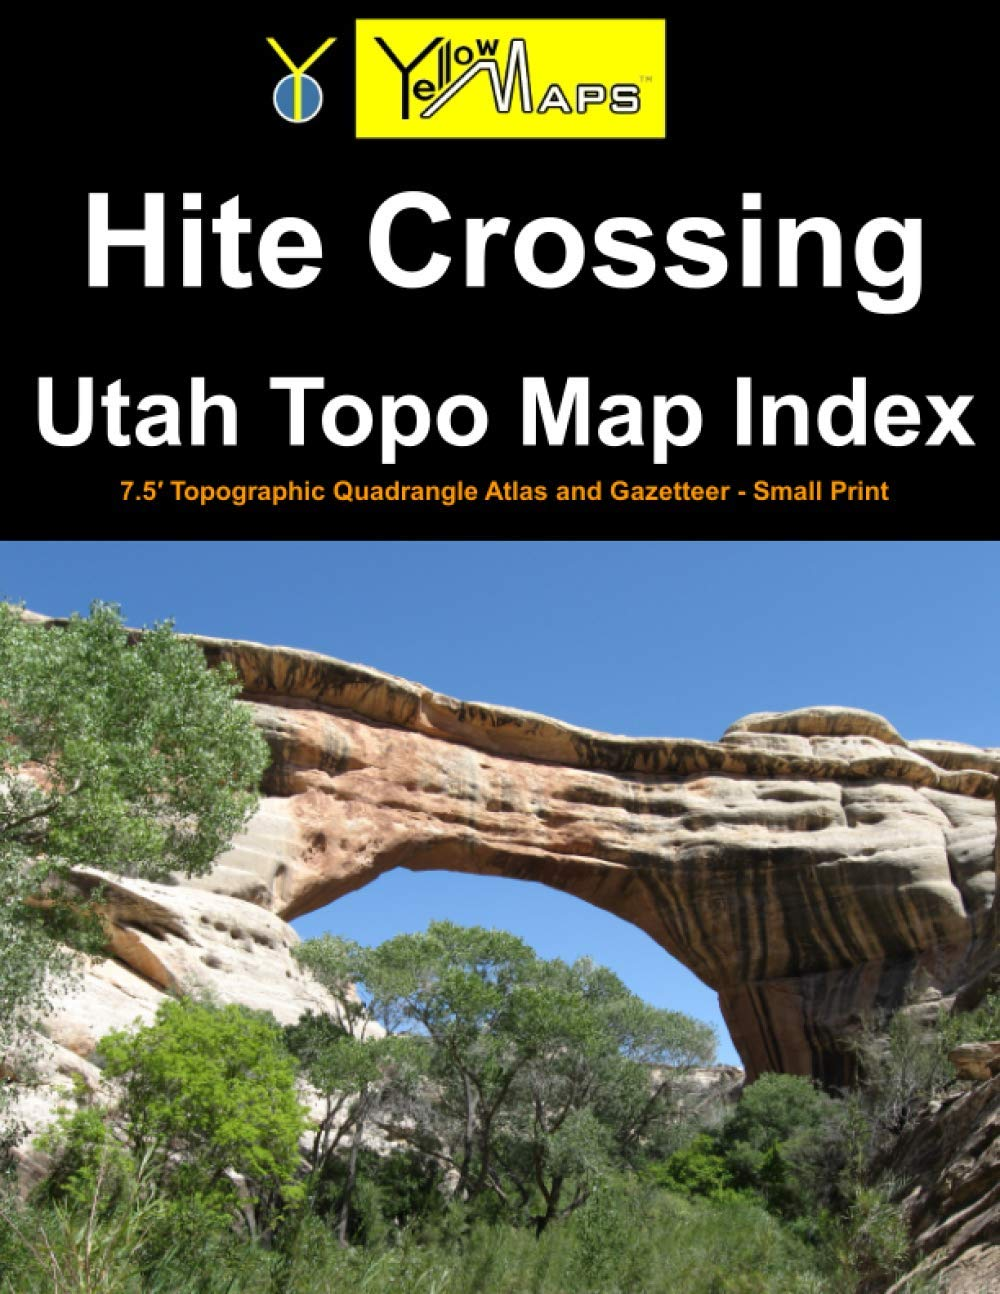 Paperback atlas: Hite Crossing Utah Topo Map Index